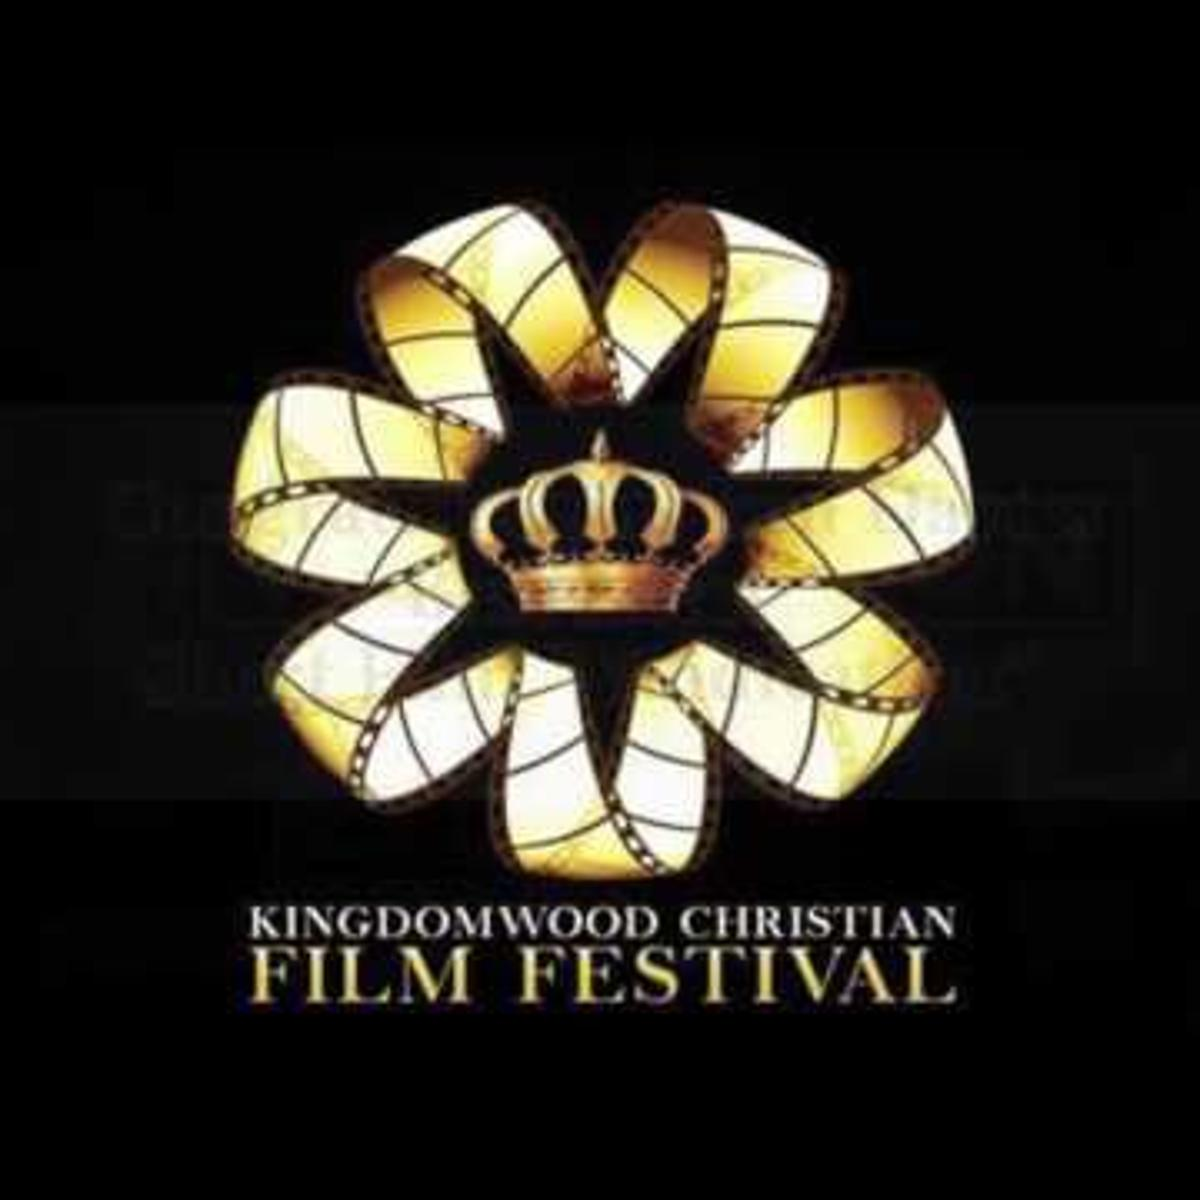 Buckhead's Kingdomwood International Film Festival announces 2017 schedule, seeking submissions | Northside / Sandy Springs Neighbor | mdjonline.com